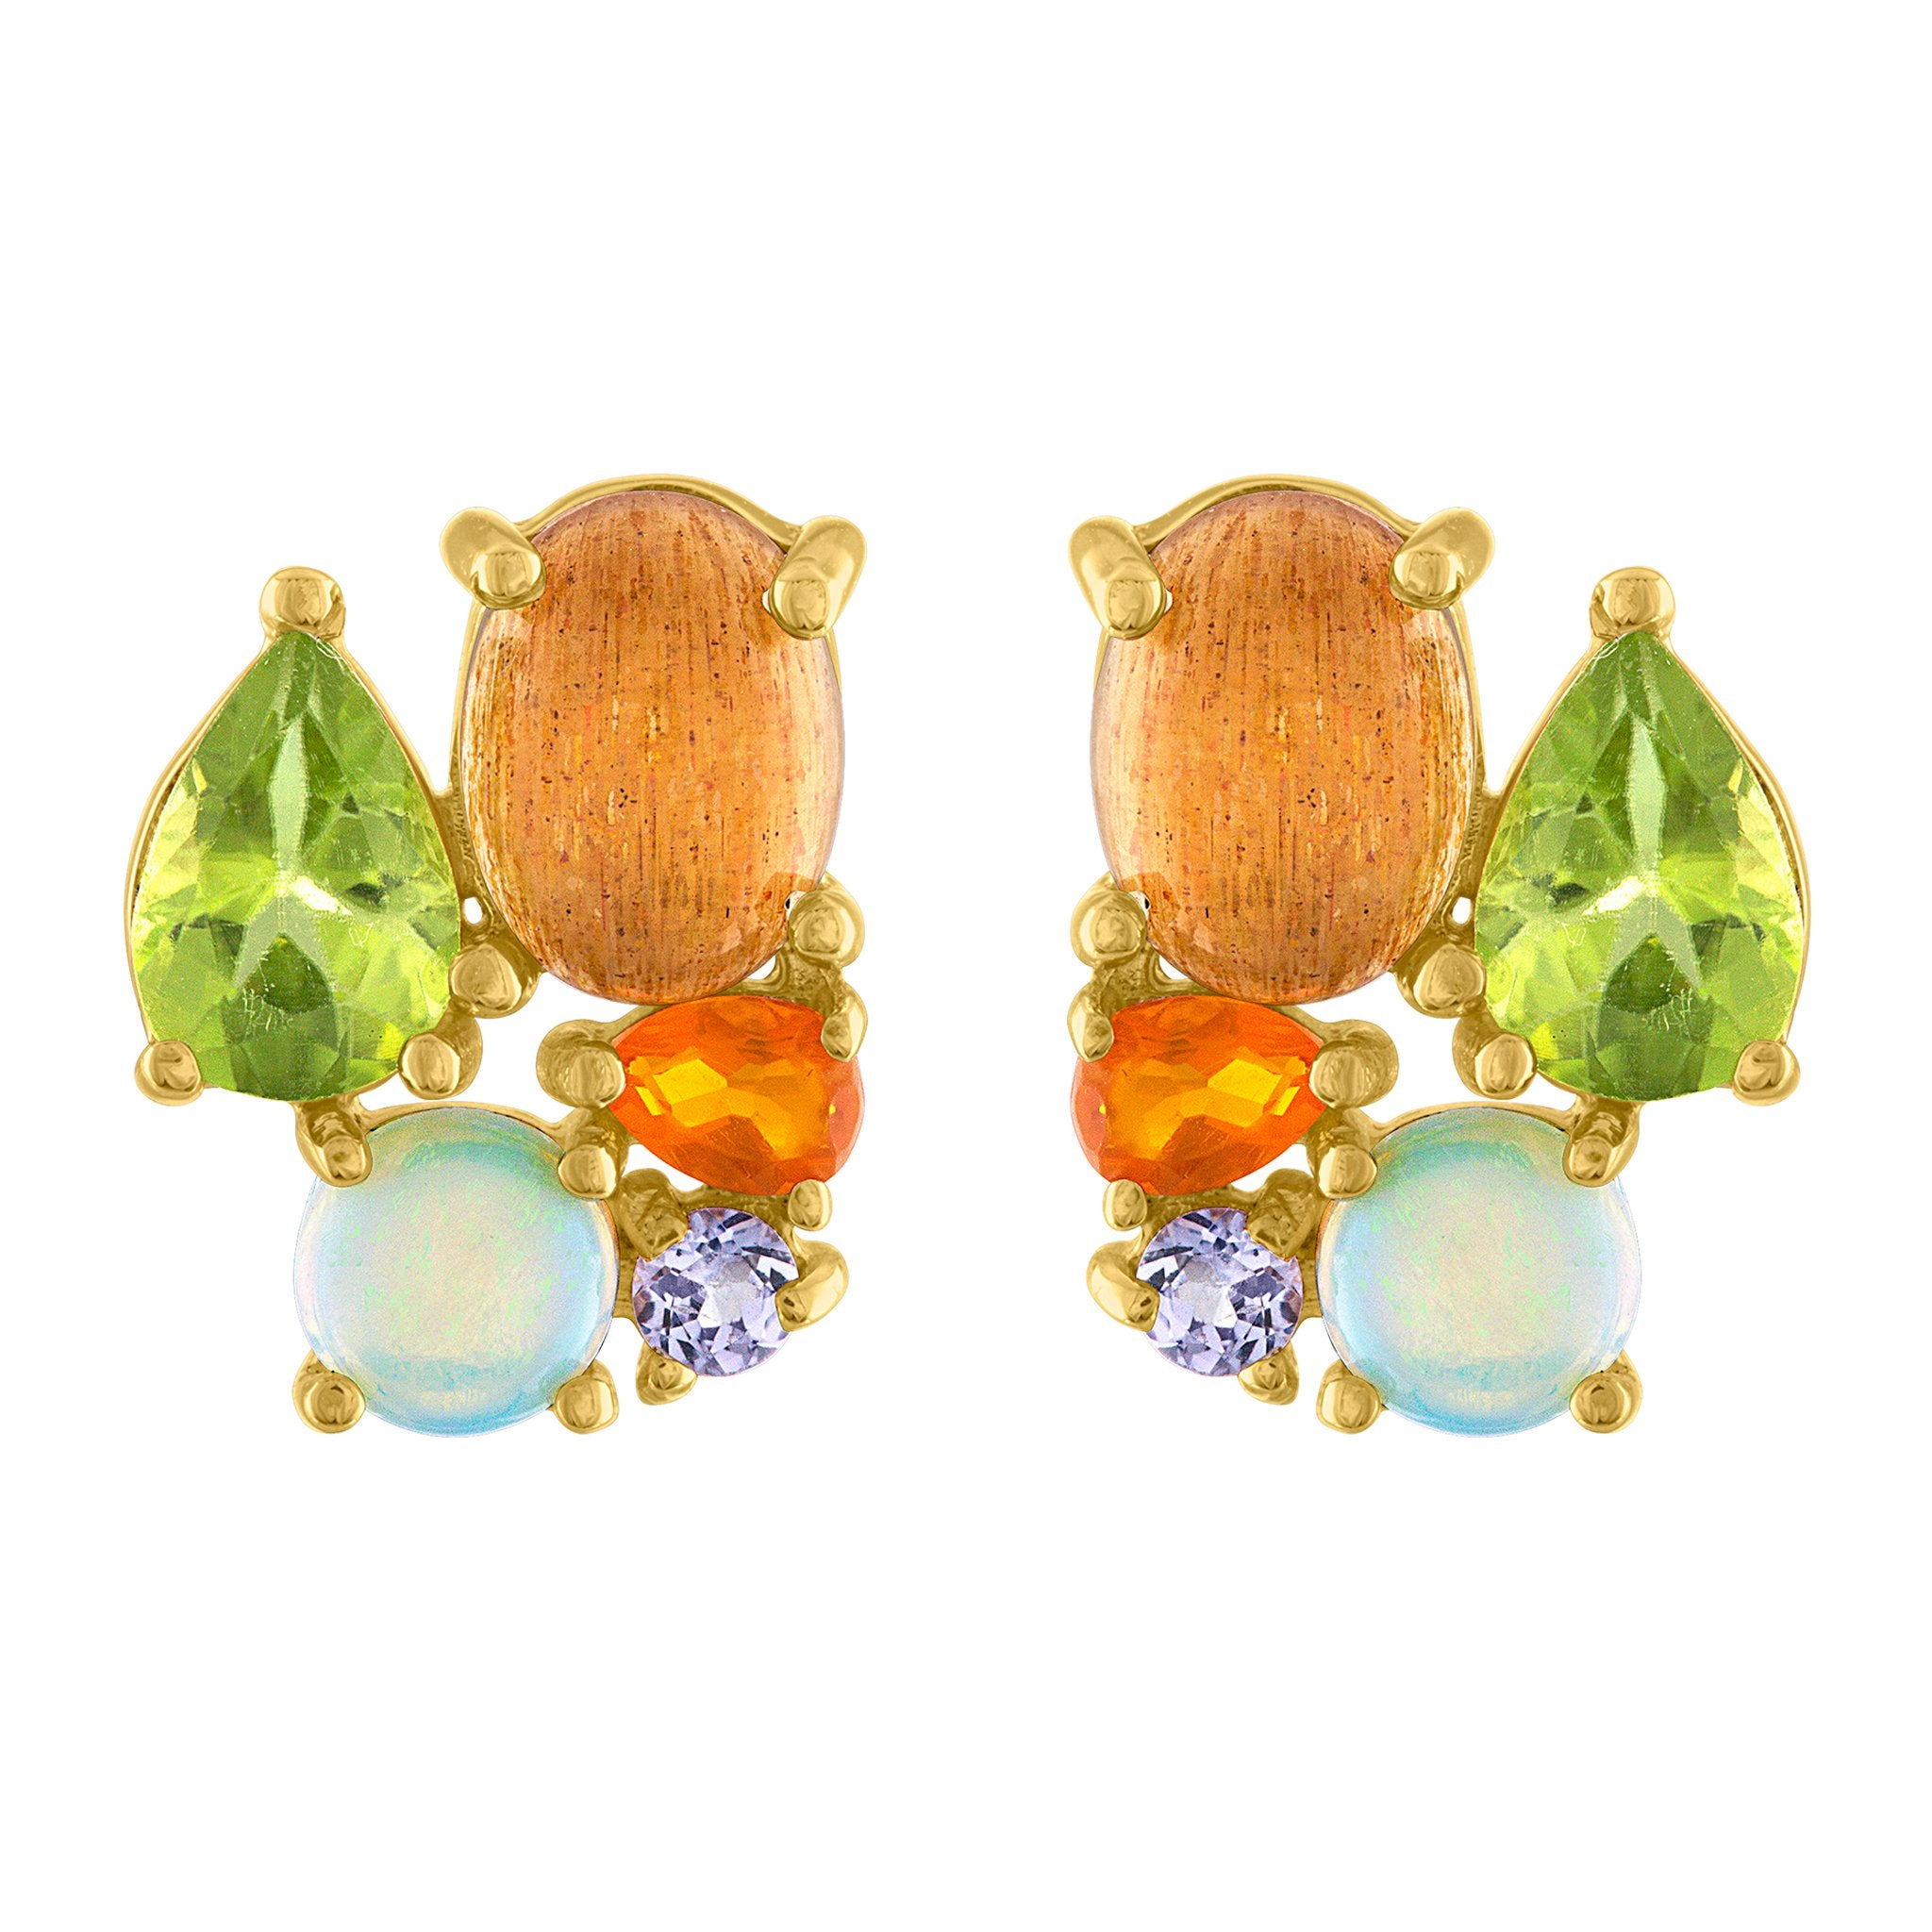 Bon Bon Stud Earrings: 14k Gold, Peridot, Sunstone, Fire Opal, Opal, Tanzanite